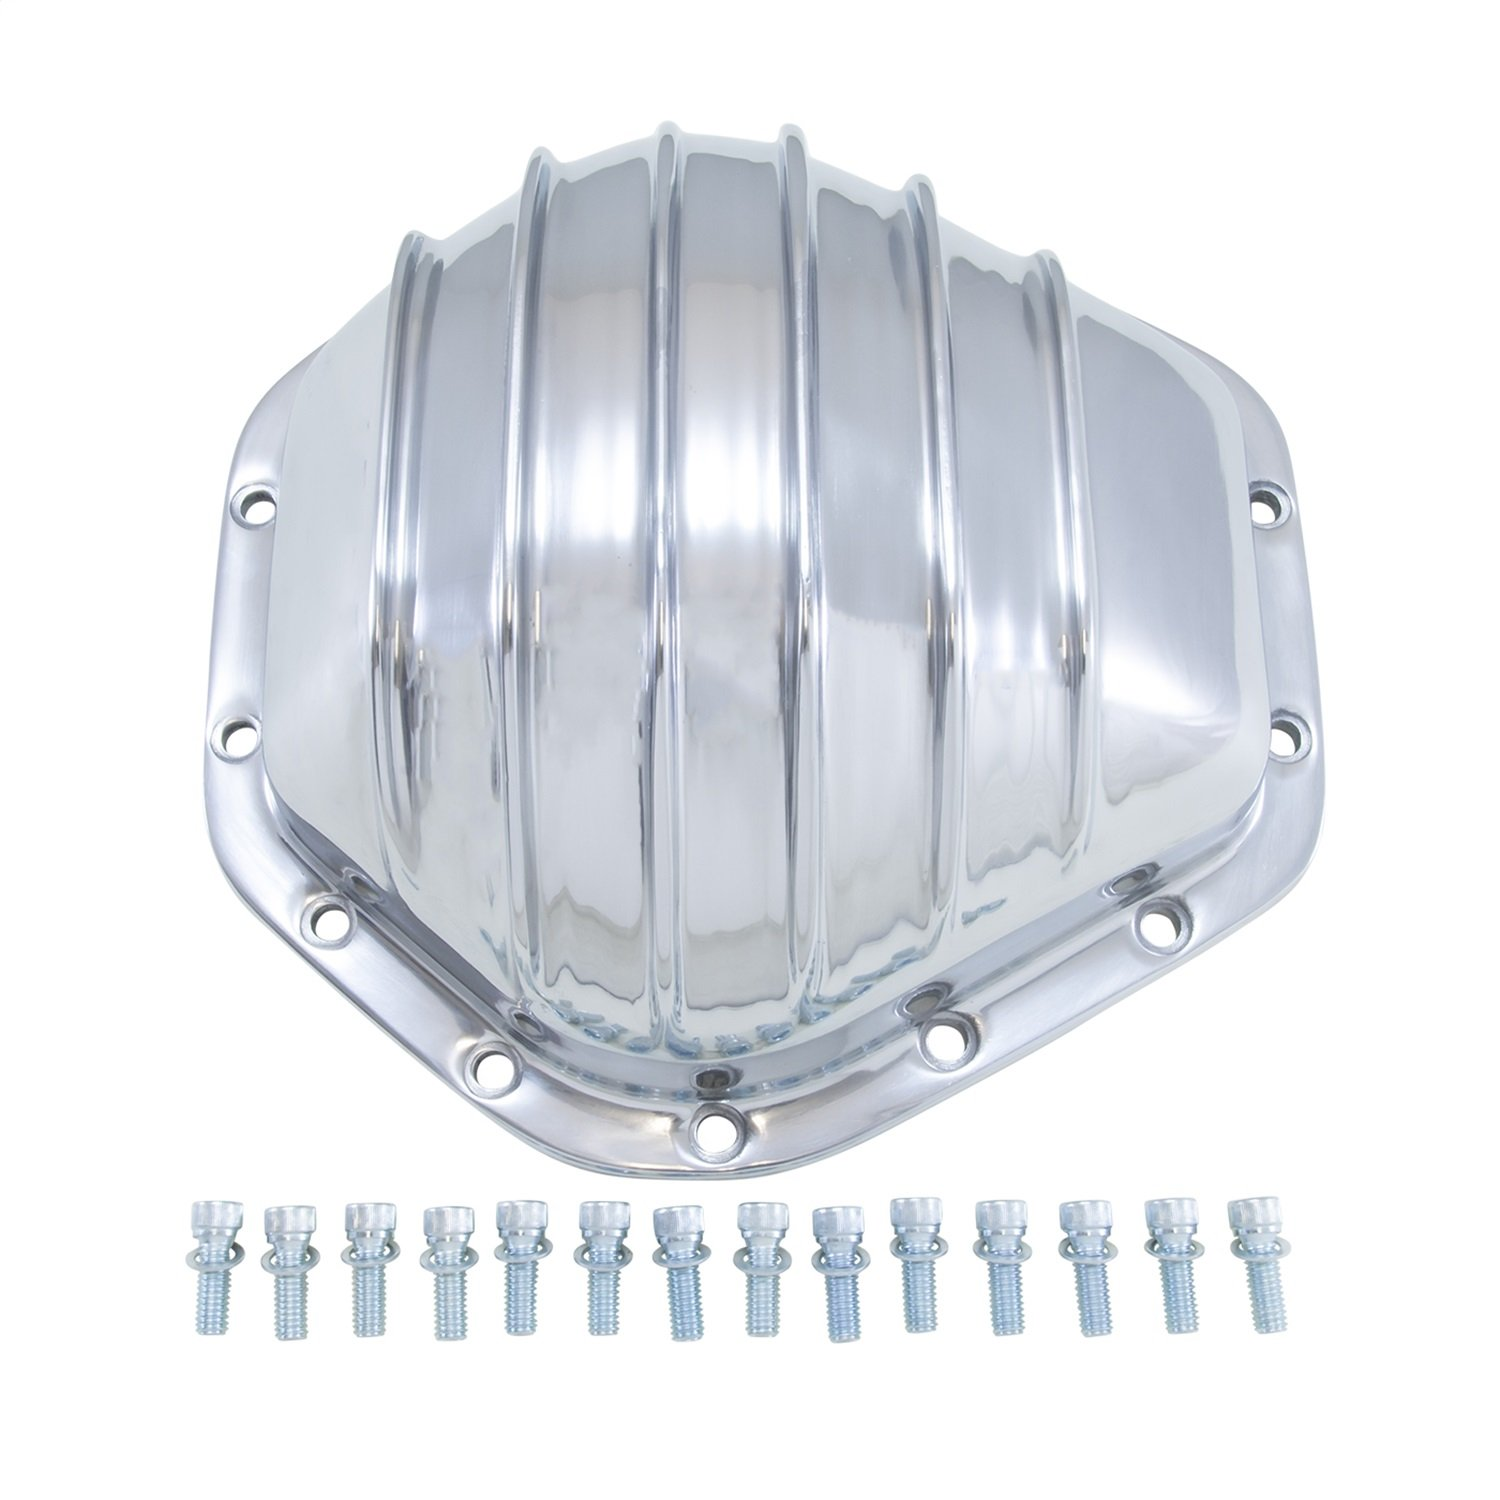 Yukon (YP C2-GM14T) Polished Aluminum Cover for GM 14-Bolt Truck 10.5'' Differential